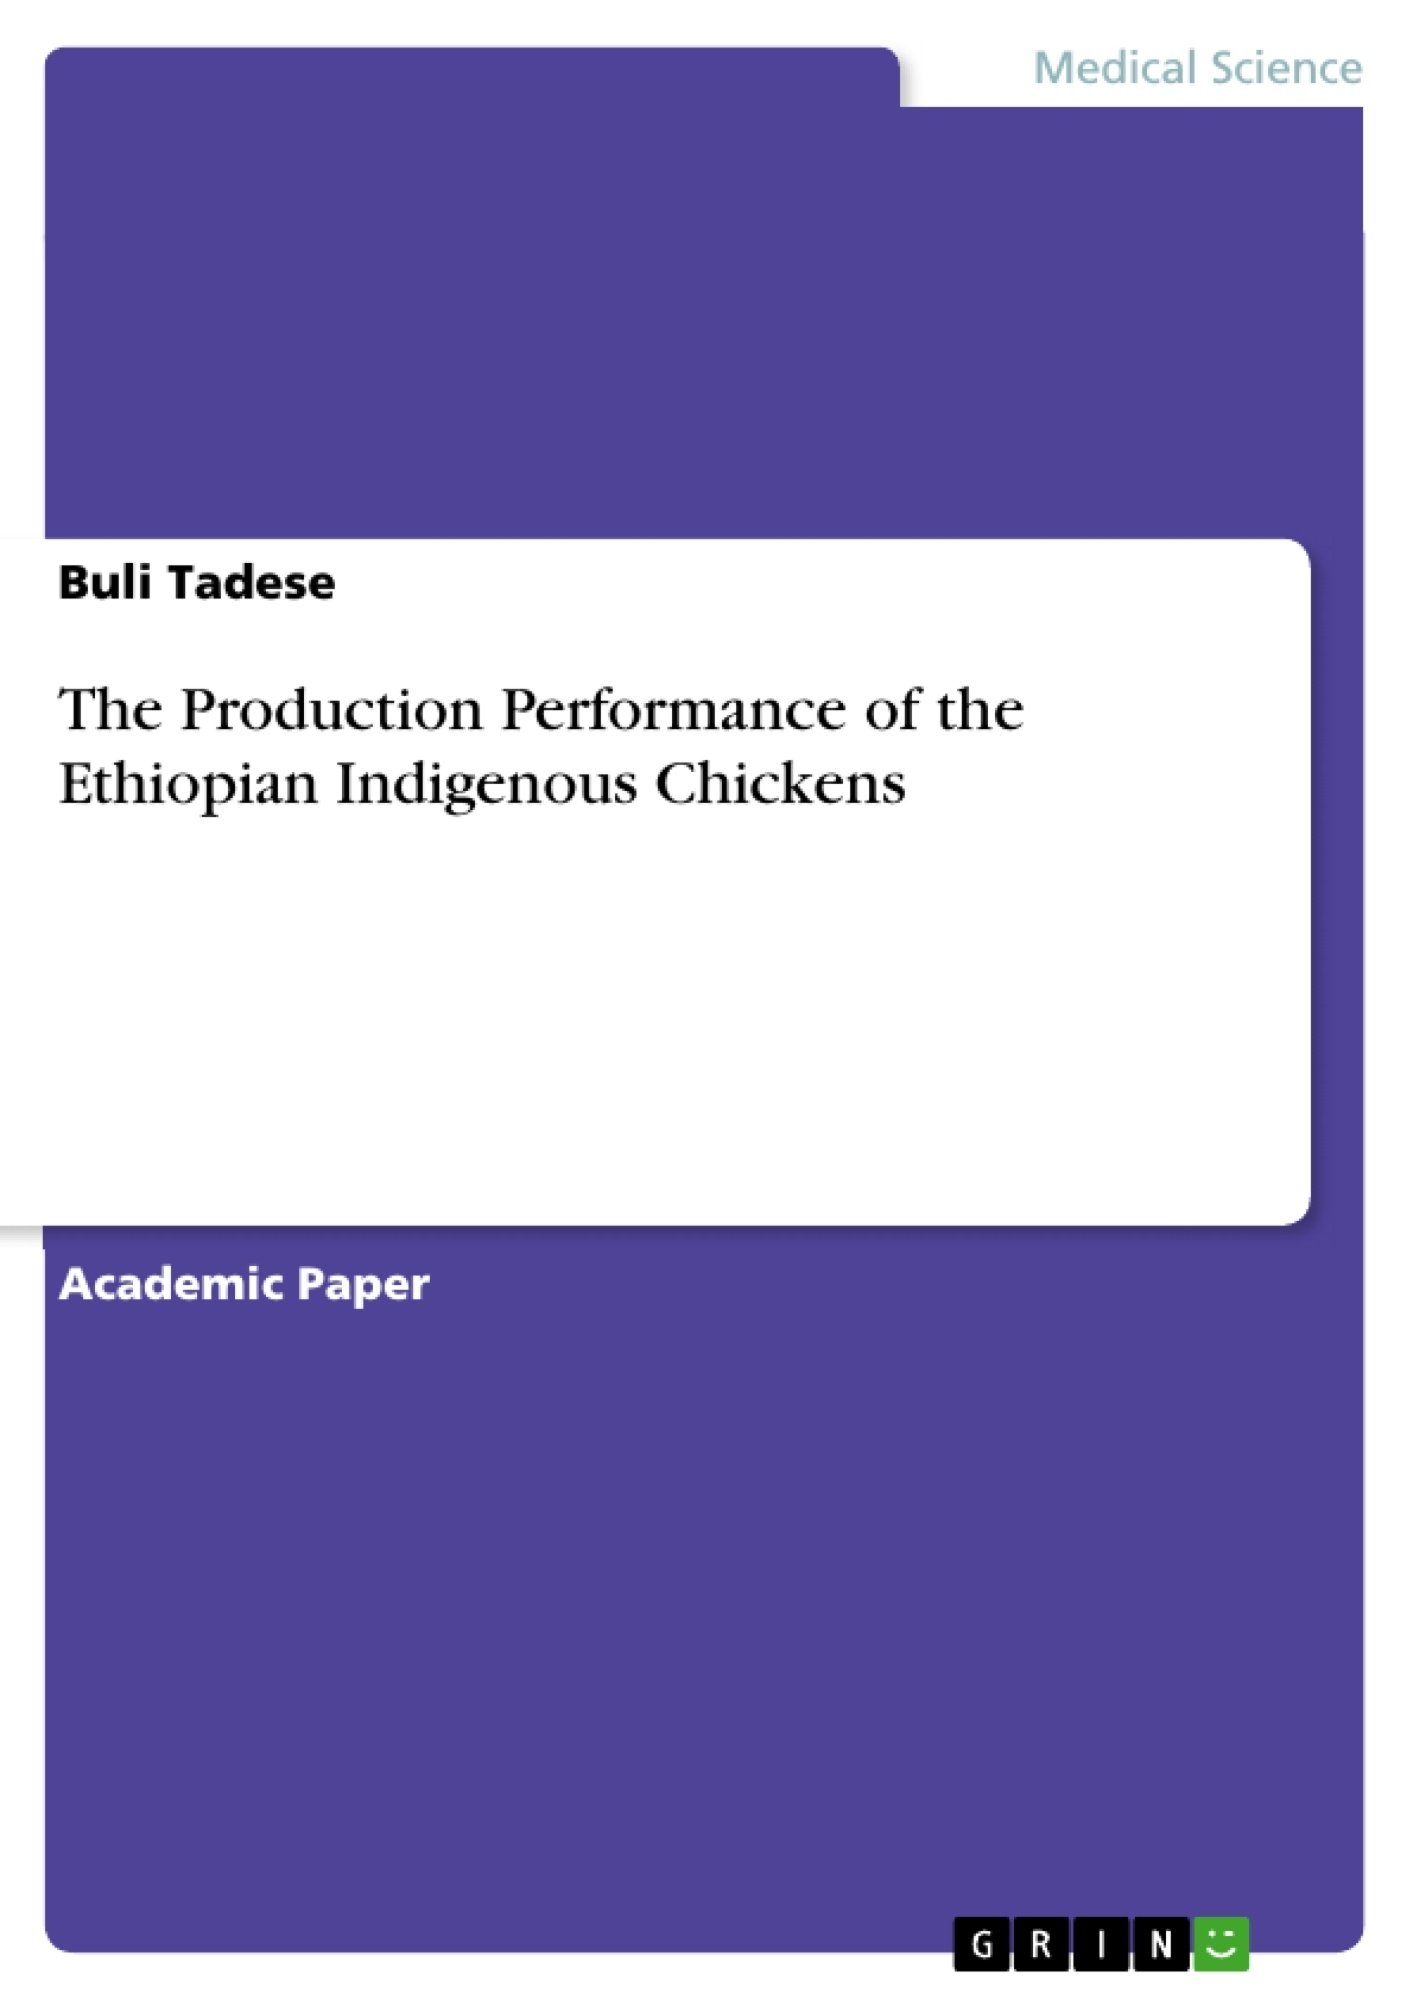 GRIN - The Production Performance of the Ethiopian Indigenous Chickens